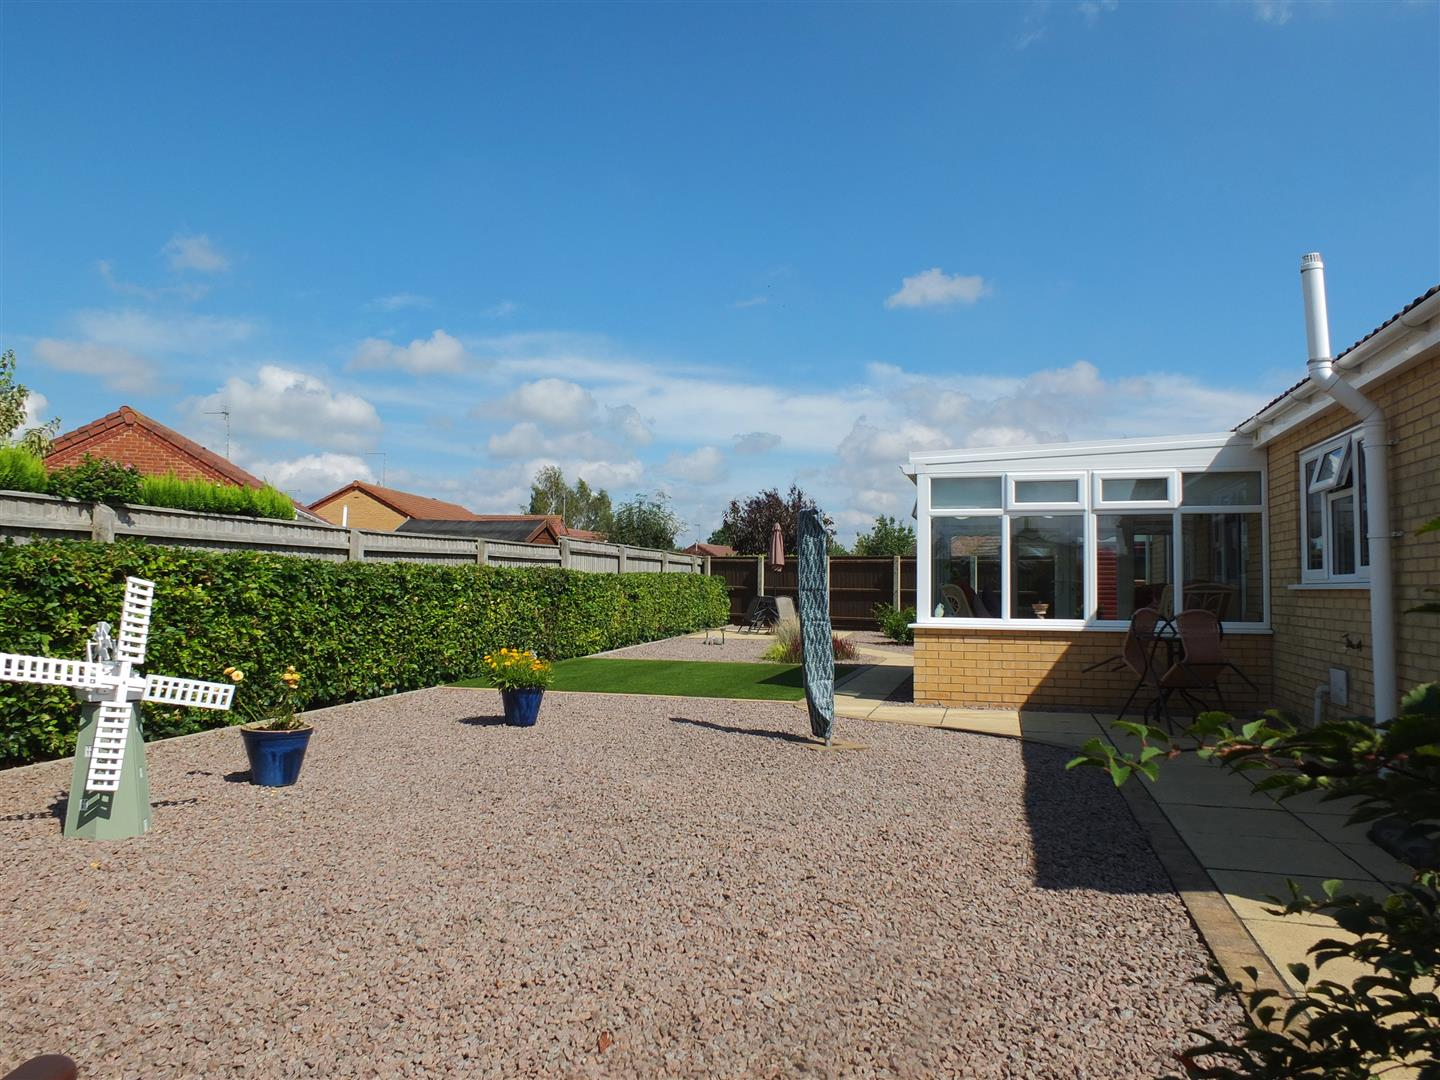 3 bed detached bungalow for sale in Long Sutton Spalding, PE12 9FT 15